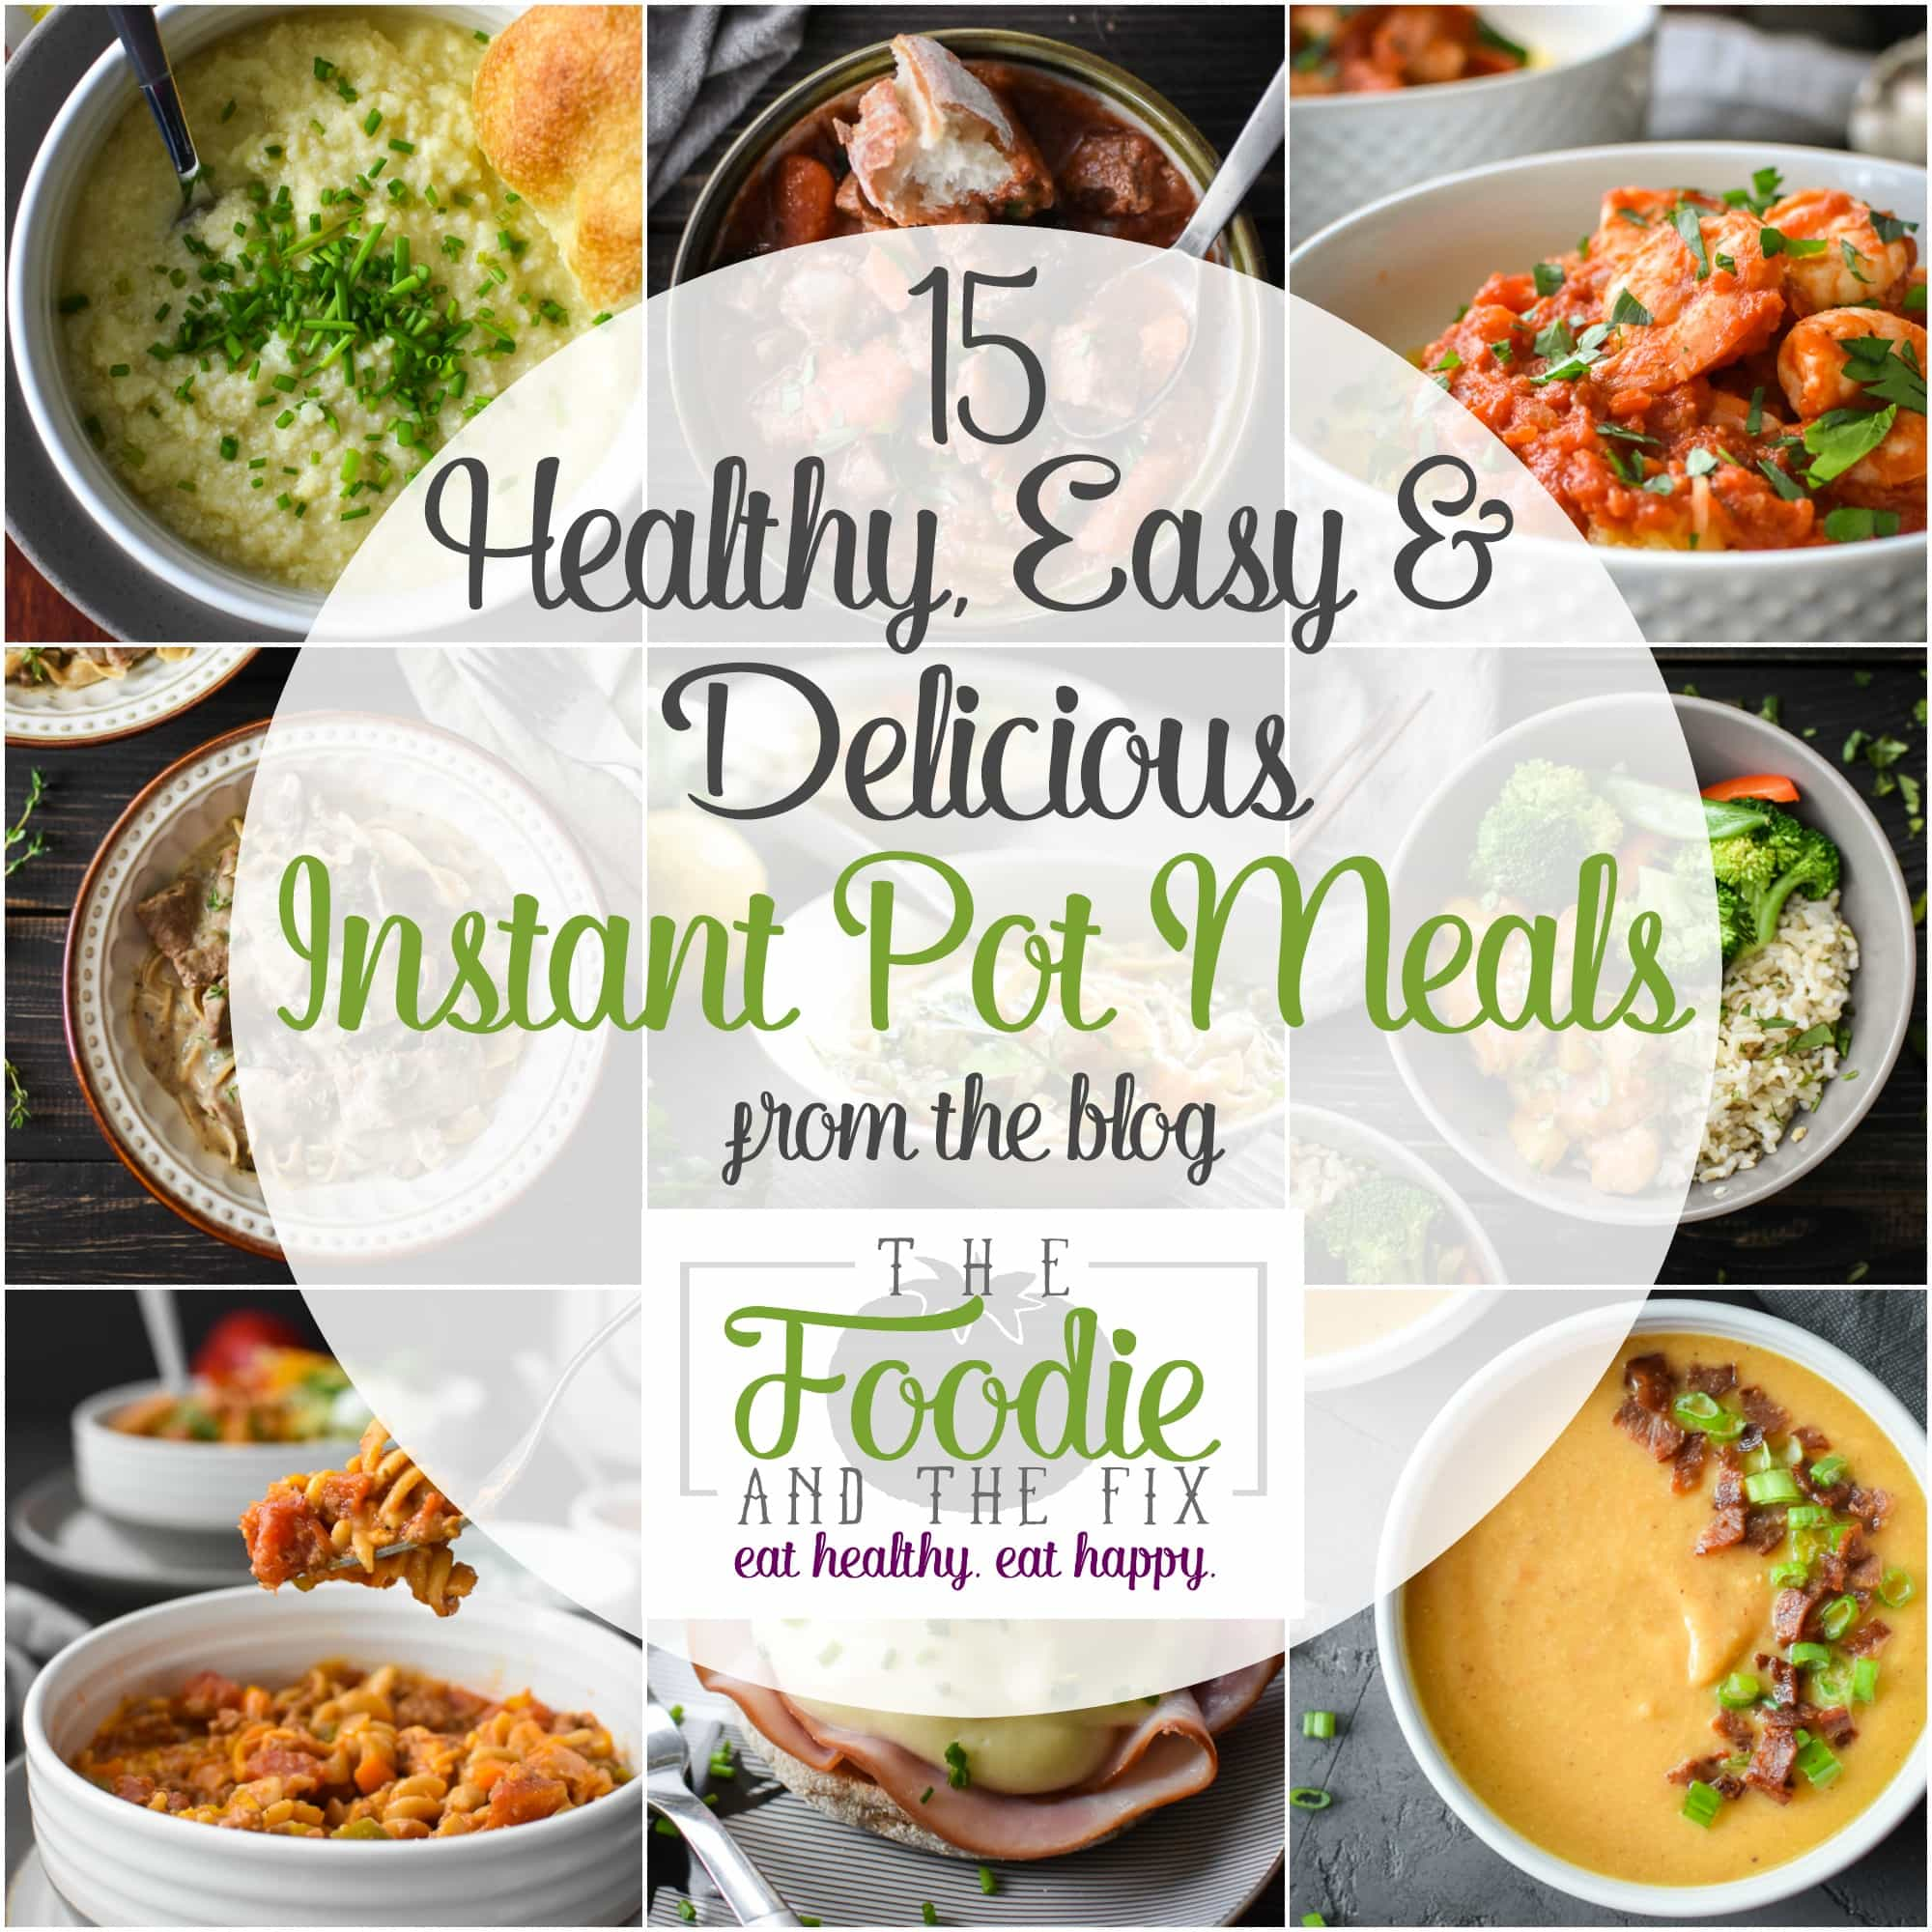 Shop my Instant Pot eBook!